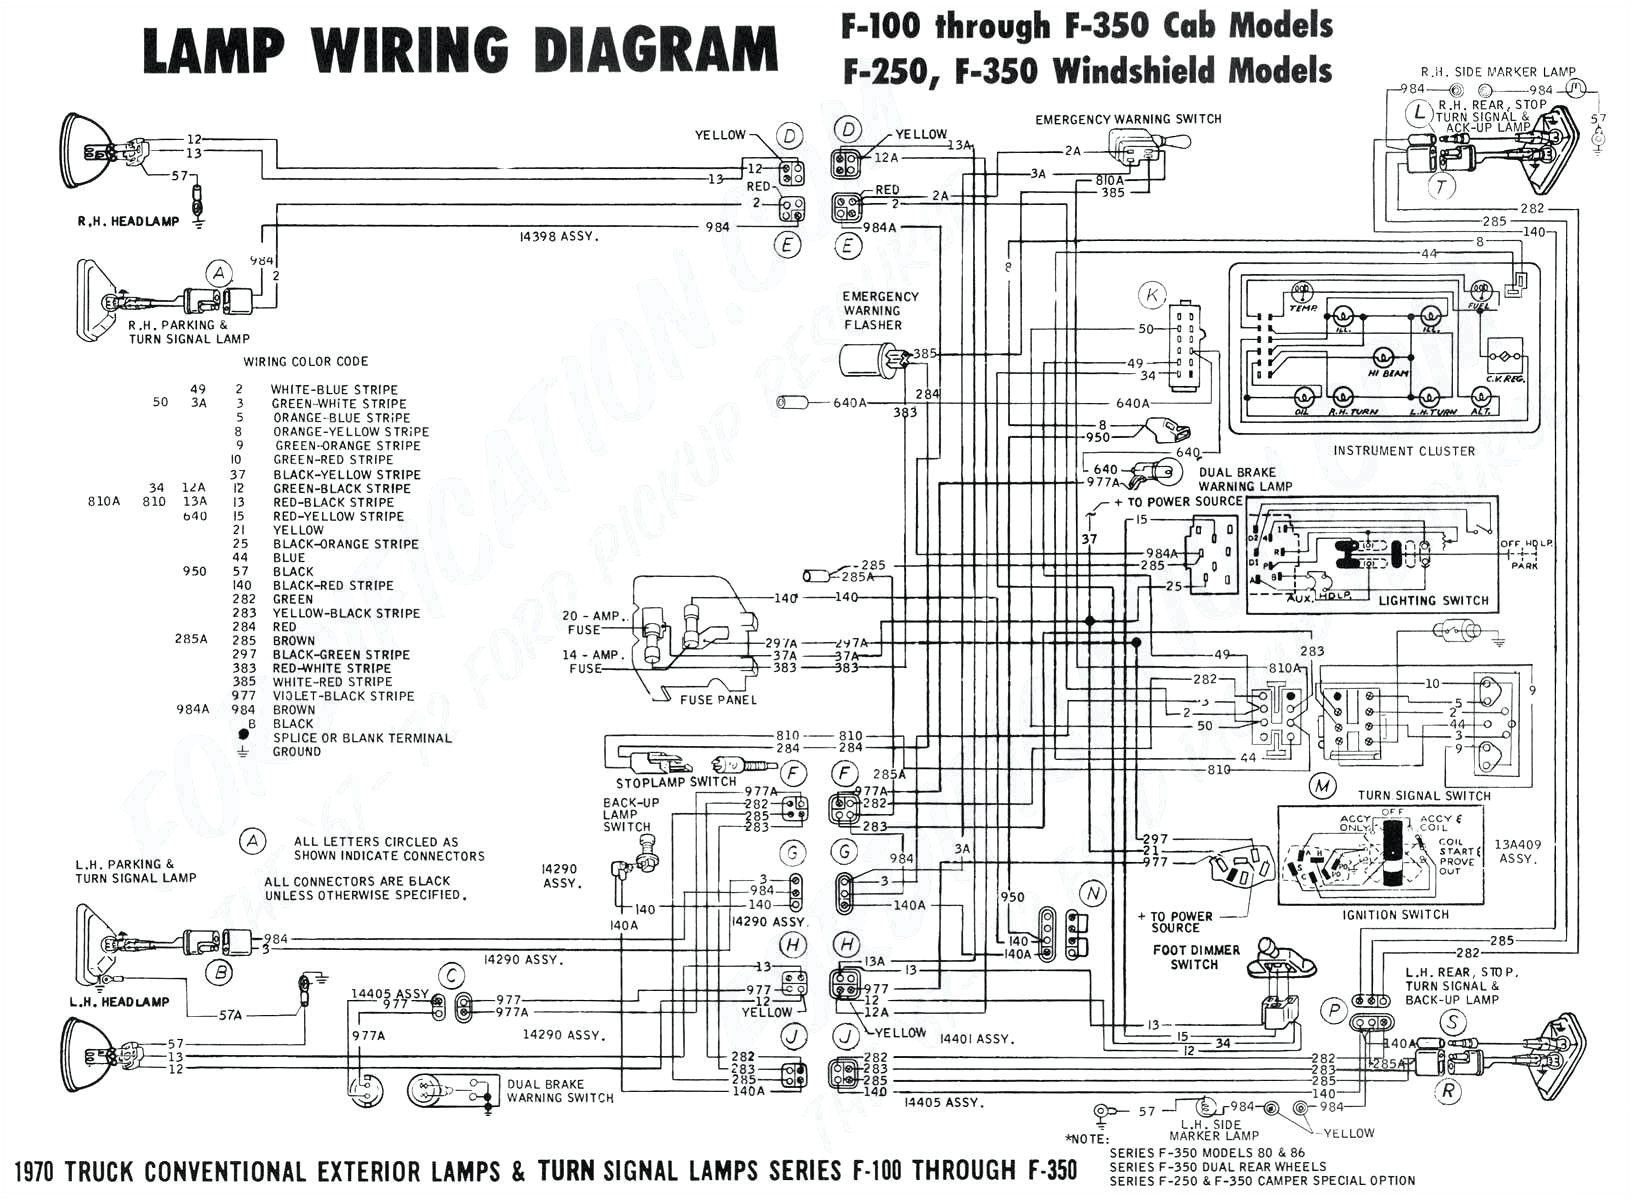 wiring diagram furthermore wiring harness diagram likewise diagrams wiring diagram besides 1962 fender stratocaster wiring likewise fender